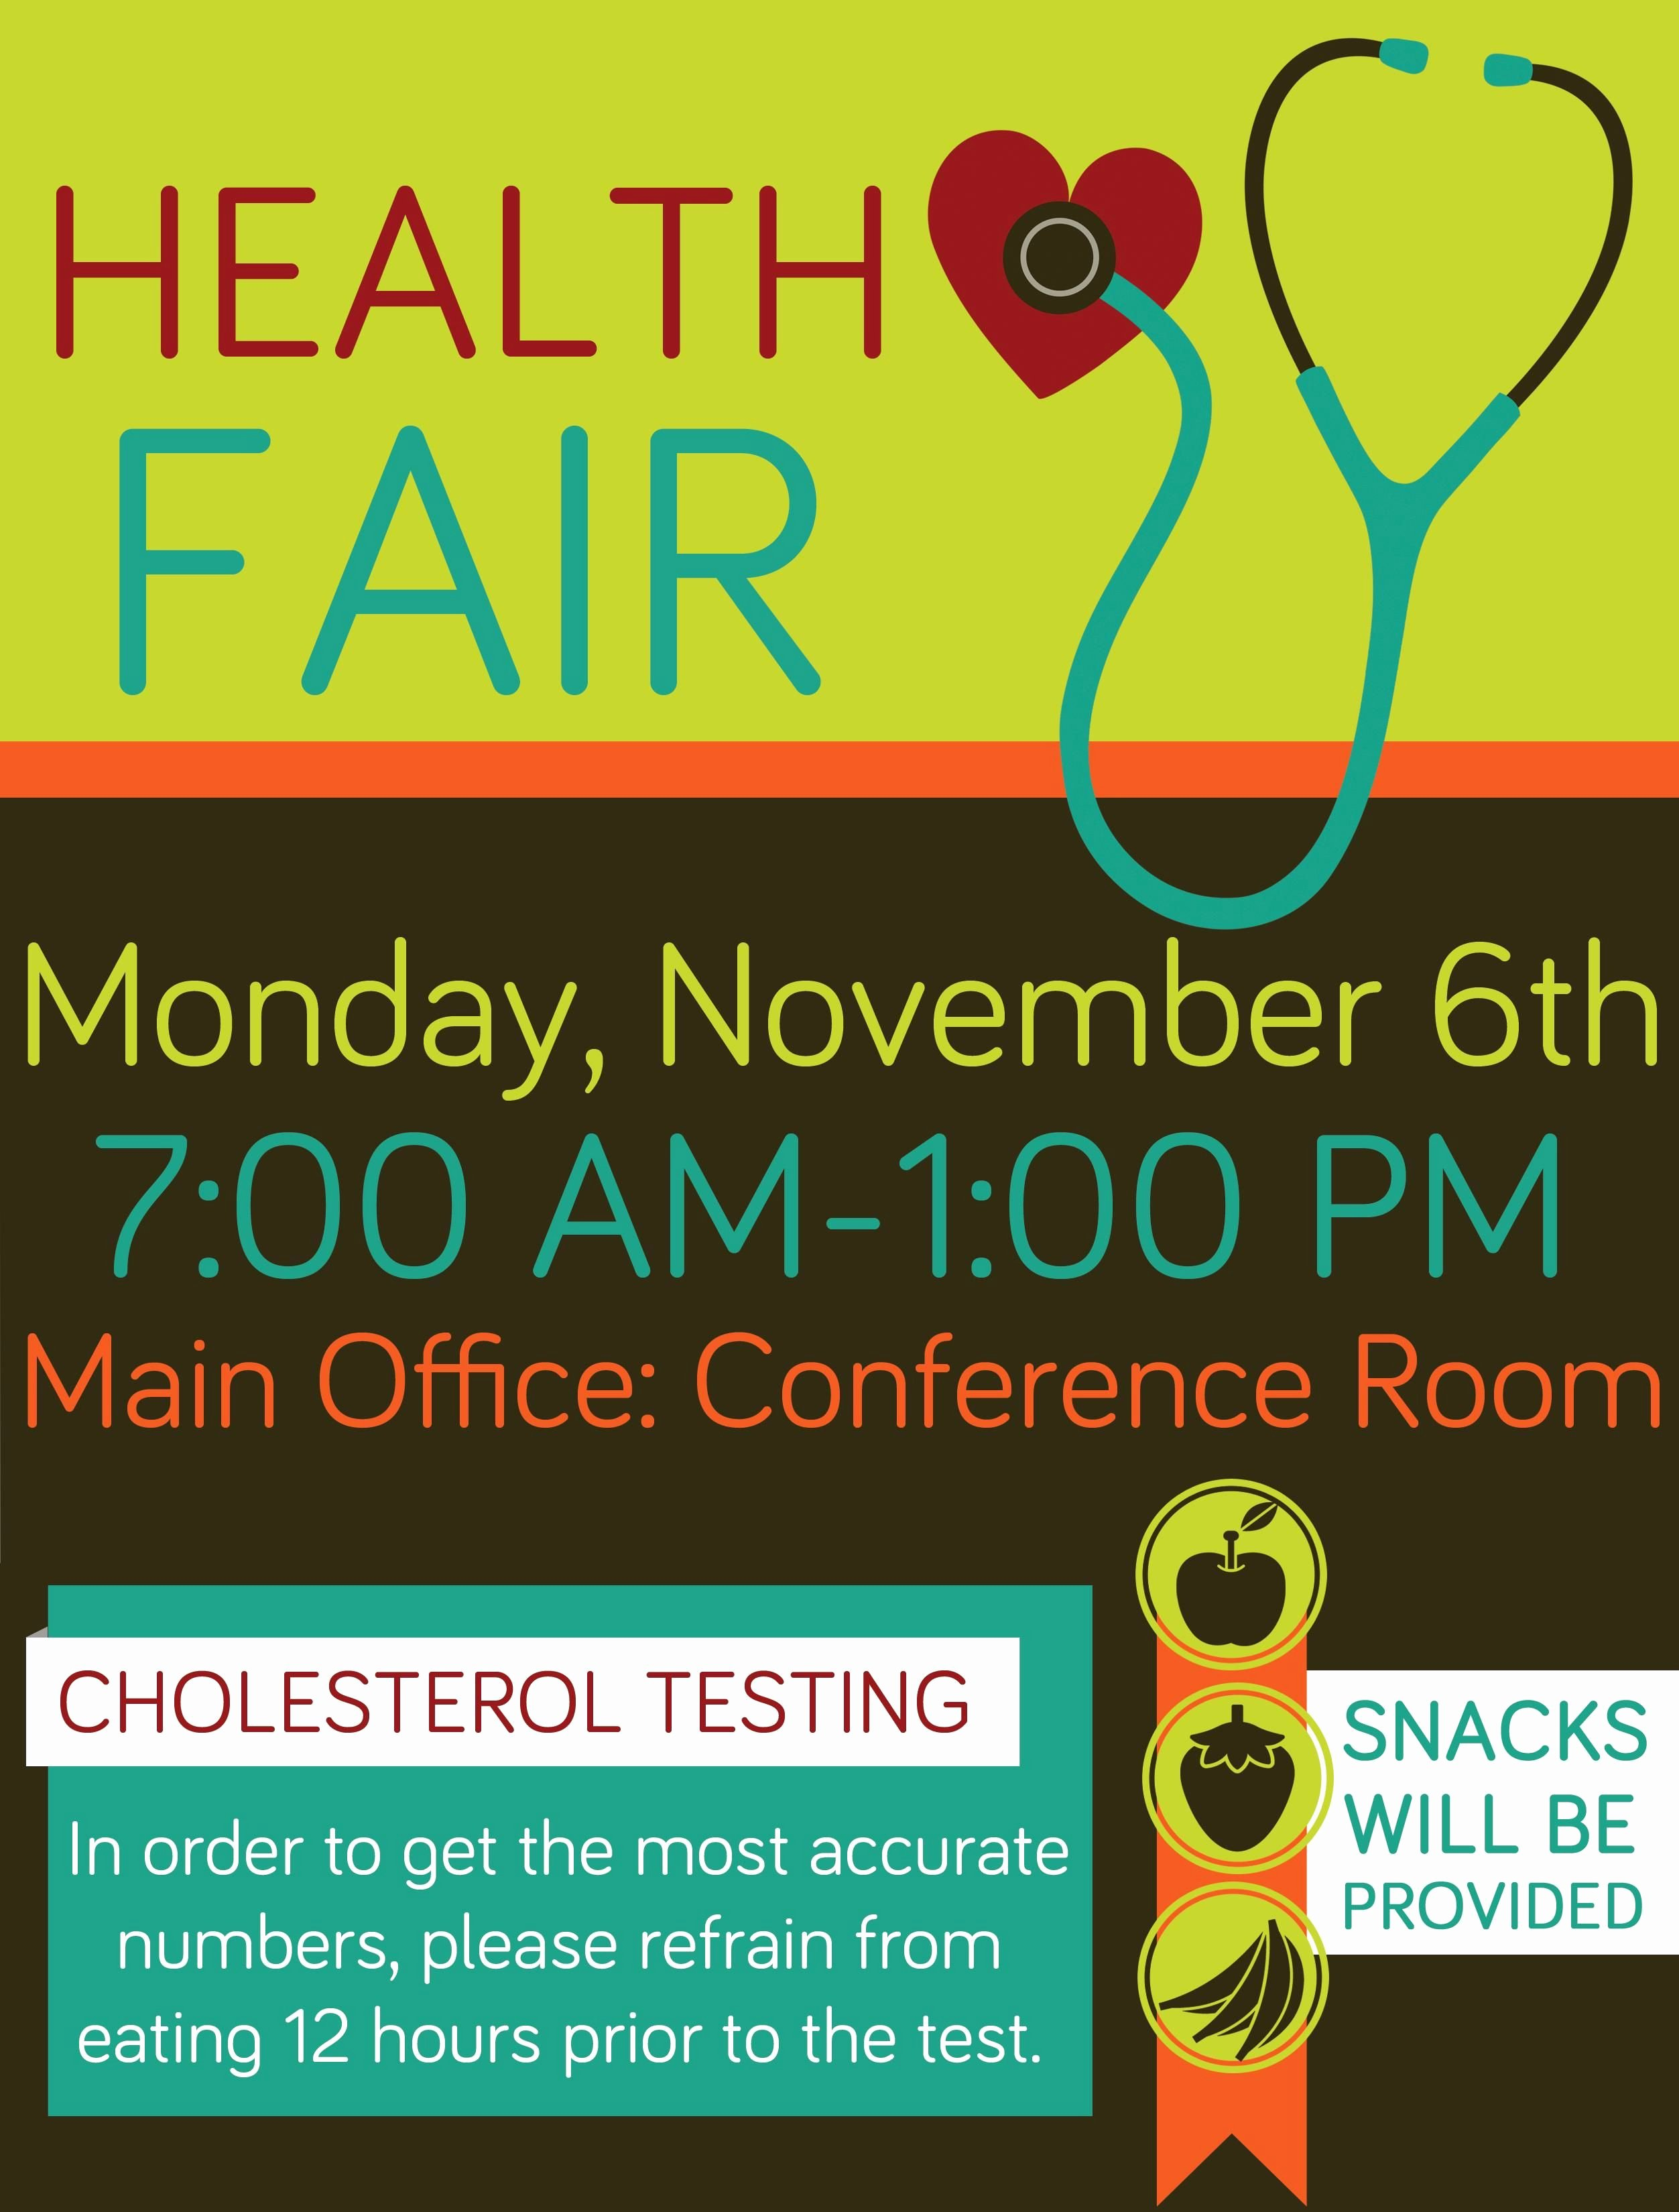 Pany Health Fair Flyer Graphic Design School Health